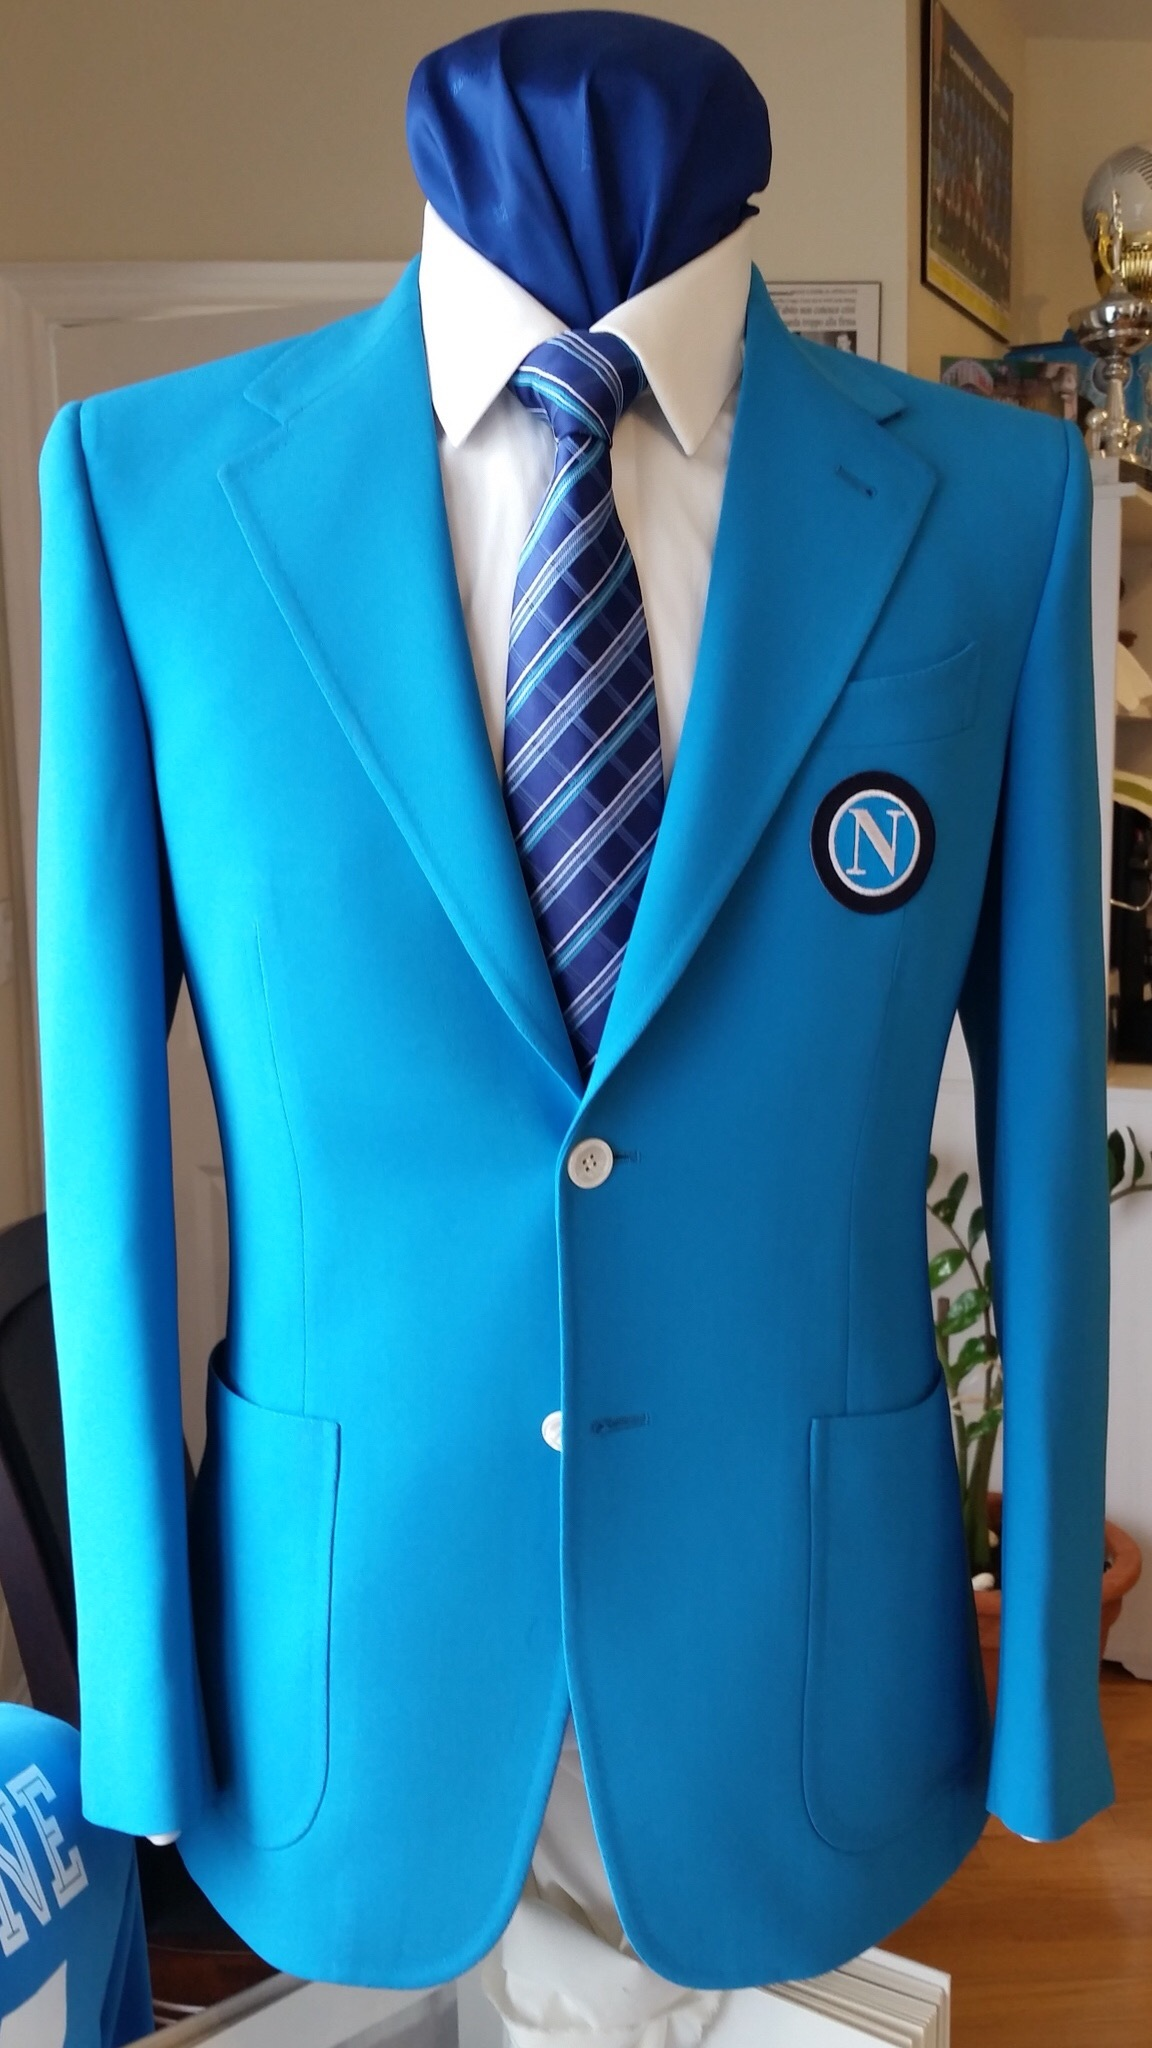 Tribute to my favourite football team NAPOLI 'S.S.C.